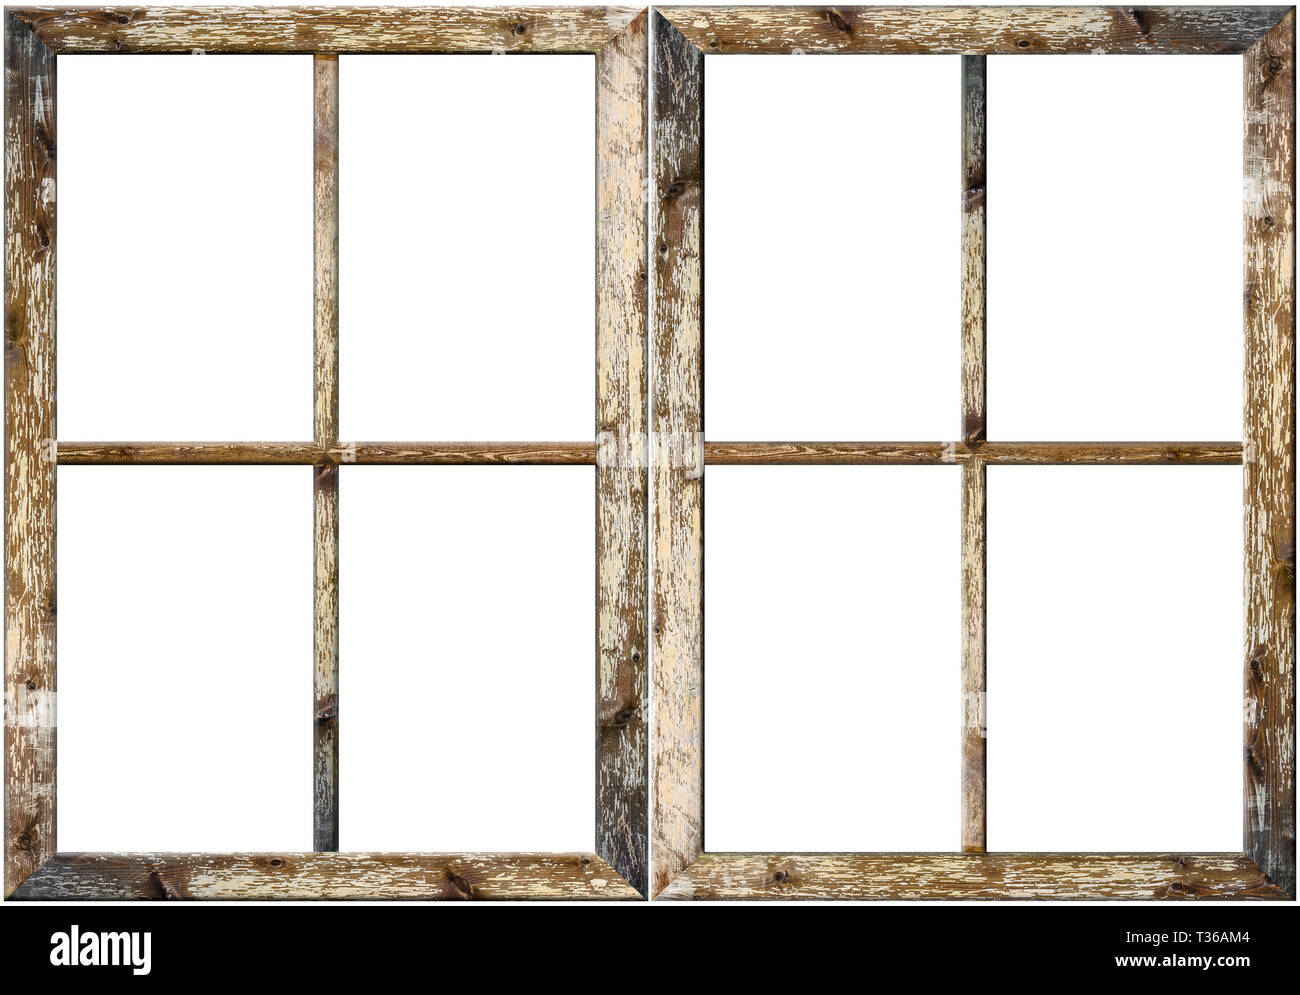 Very Aged Wooden Window Frame With Cracked Paint On It